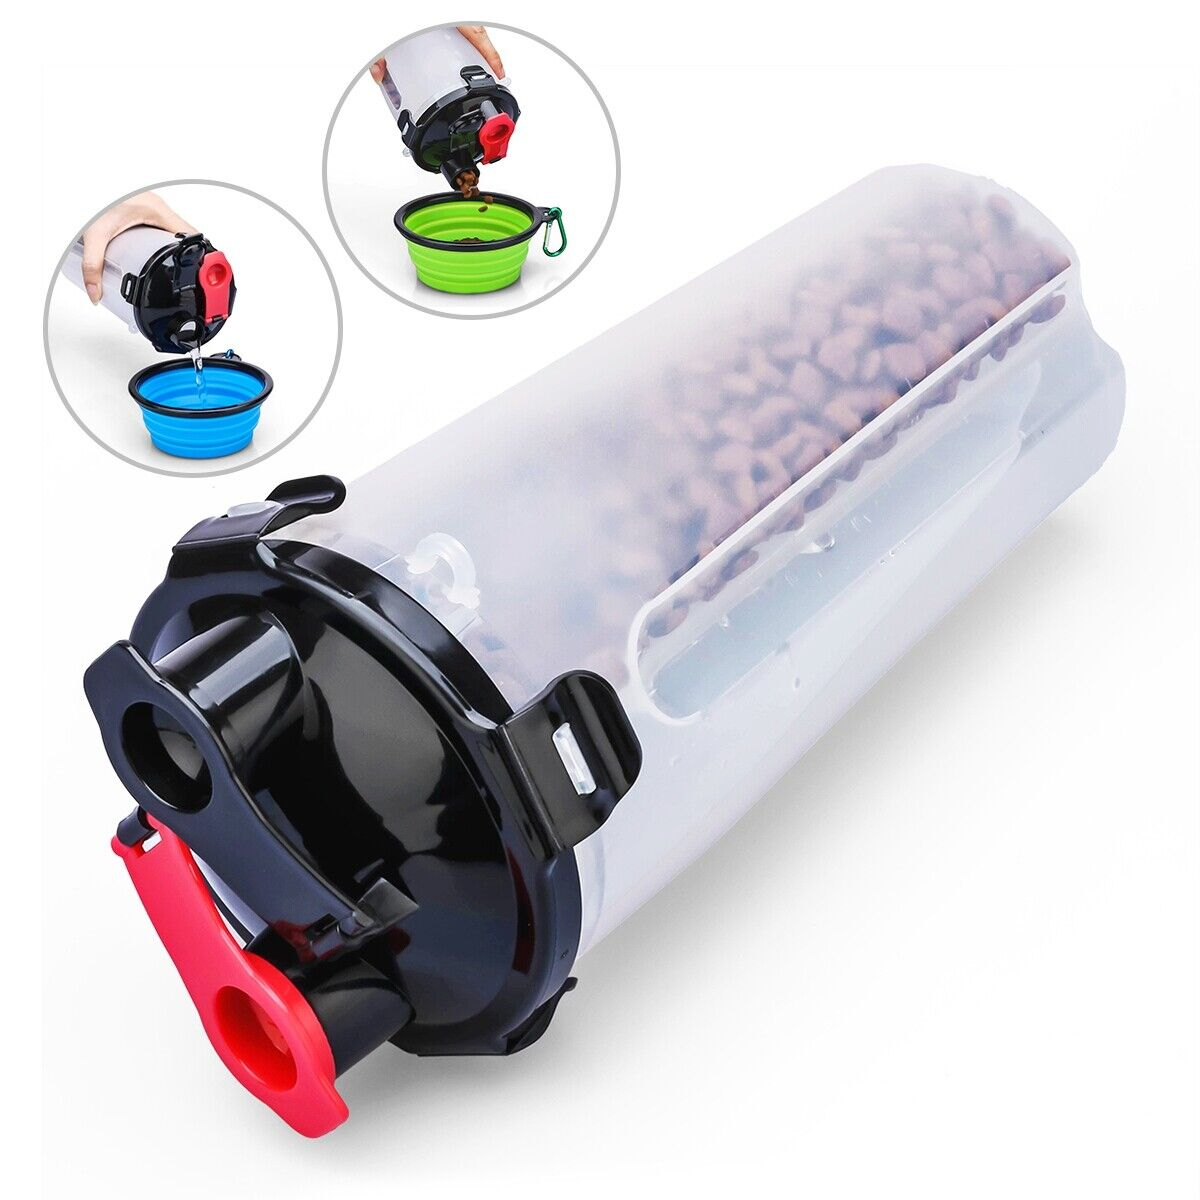 Pet Food Feeder Container 2 in 1 Dog Food and Water Non-Spill for Pet Outdoor